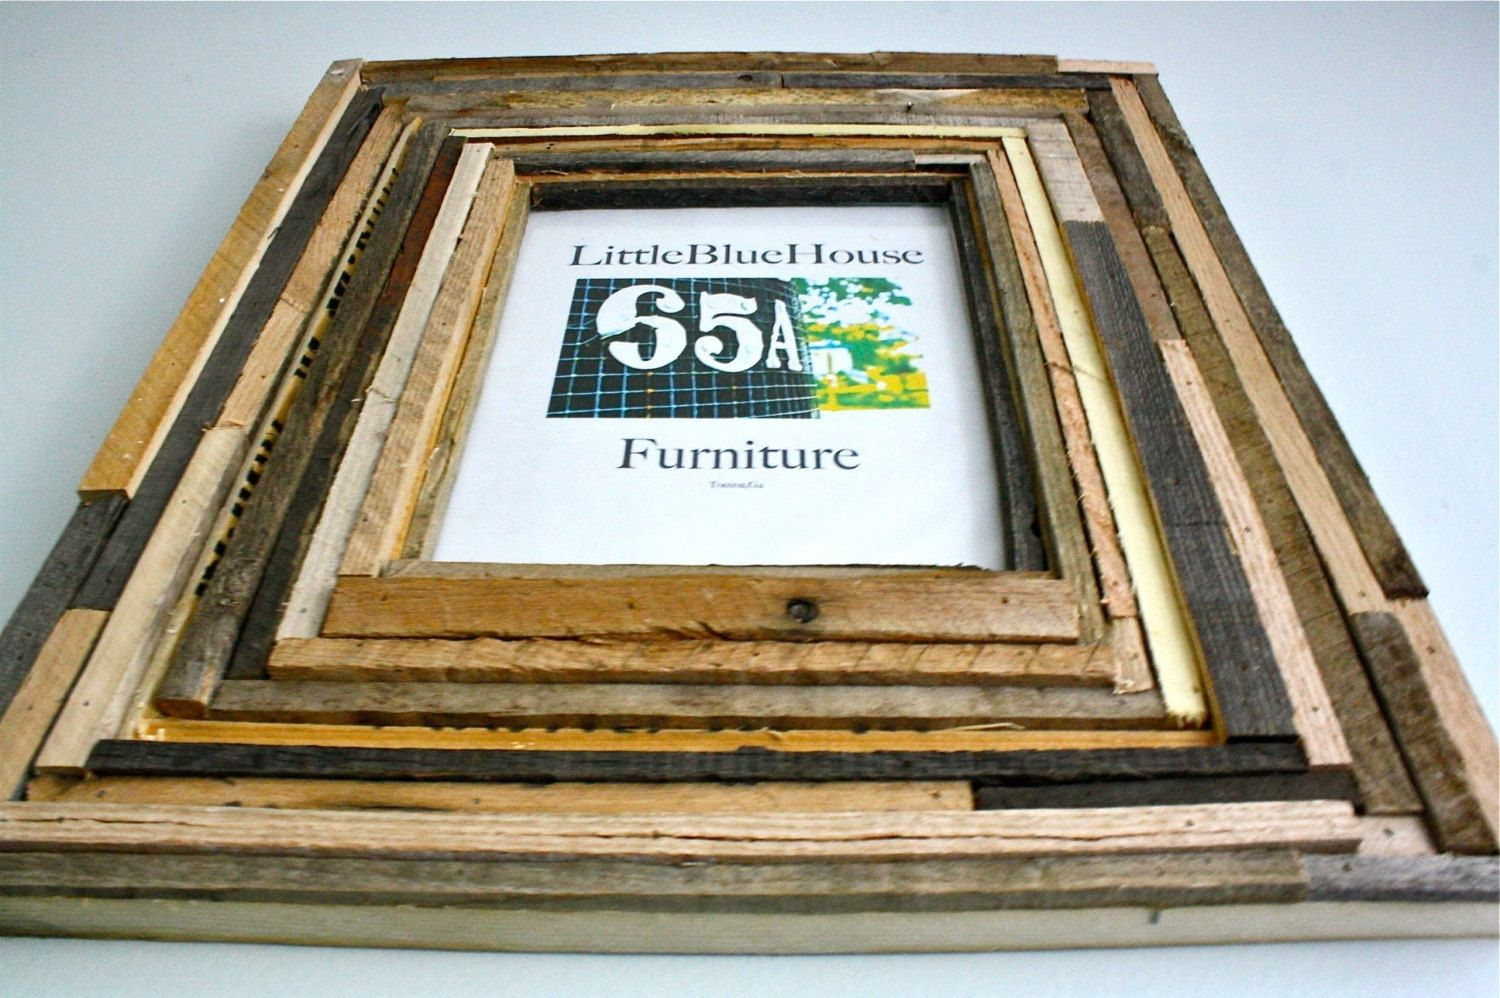 custom made multiple layered wood 8x10 frame made from recycled barn wood and pallet wood